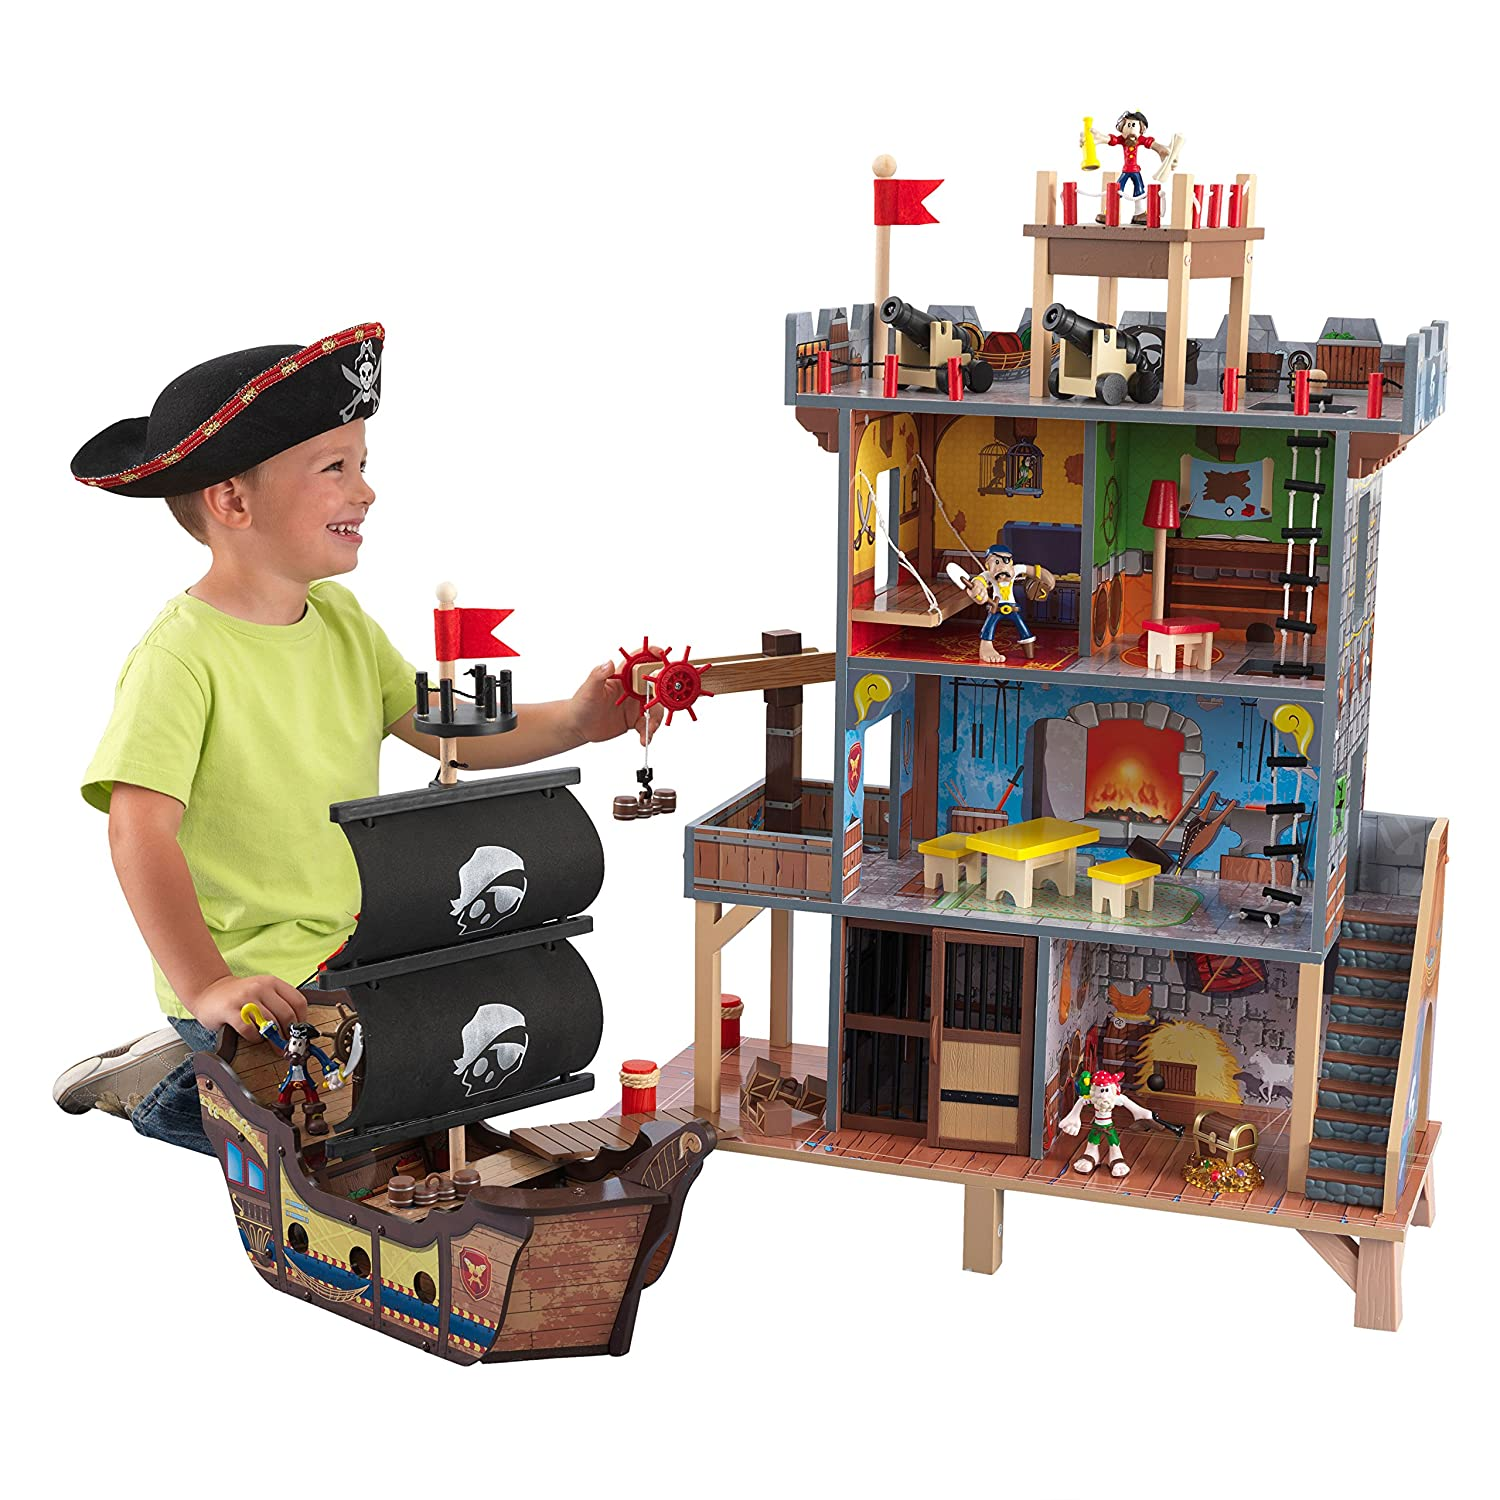 Kidkraft 63284 Pirates Cove Play Set Toy Brown Pack Of The 2015 Christmas List Best Stem Toys For Your Little Nerds And 3 Games